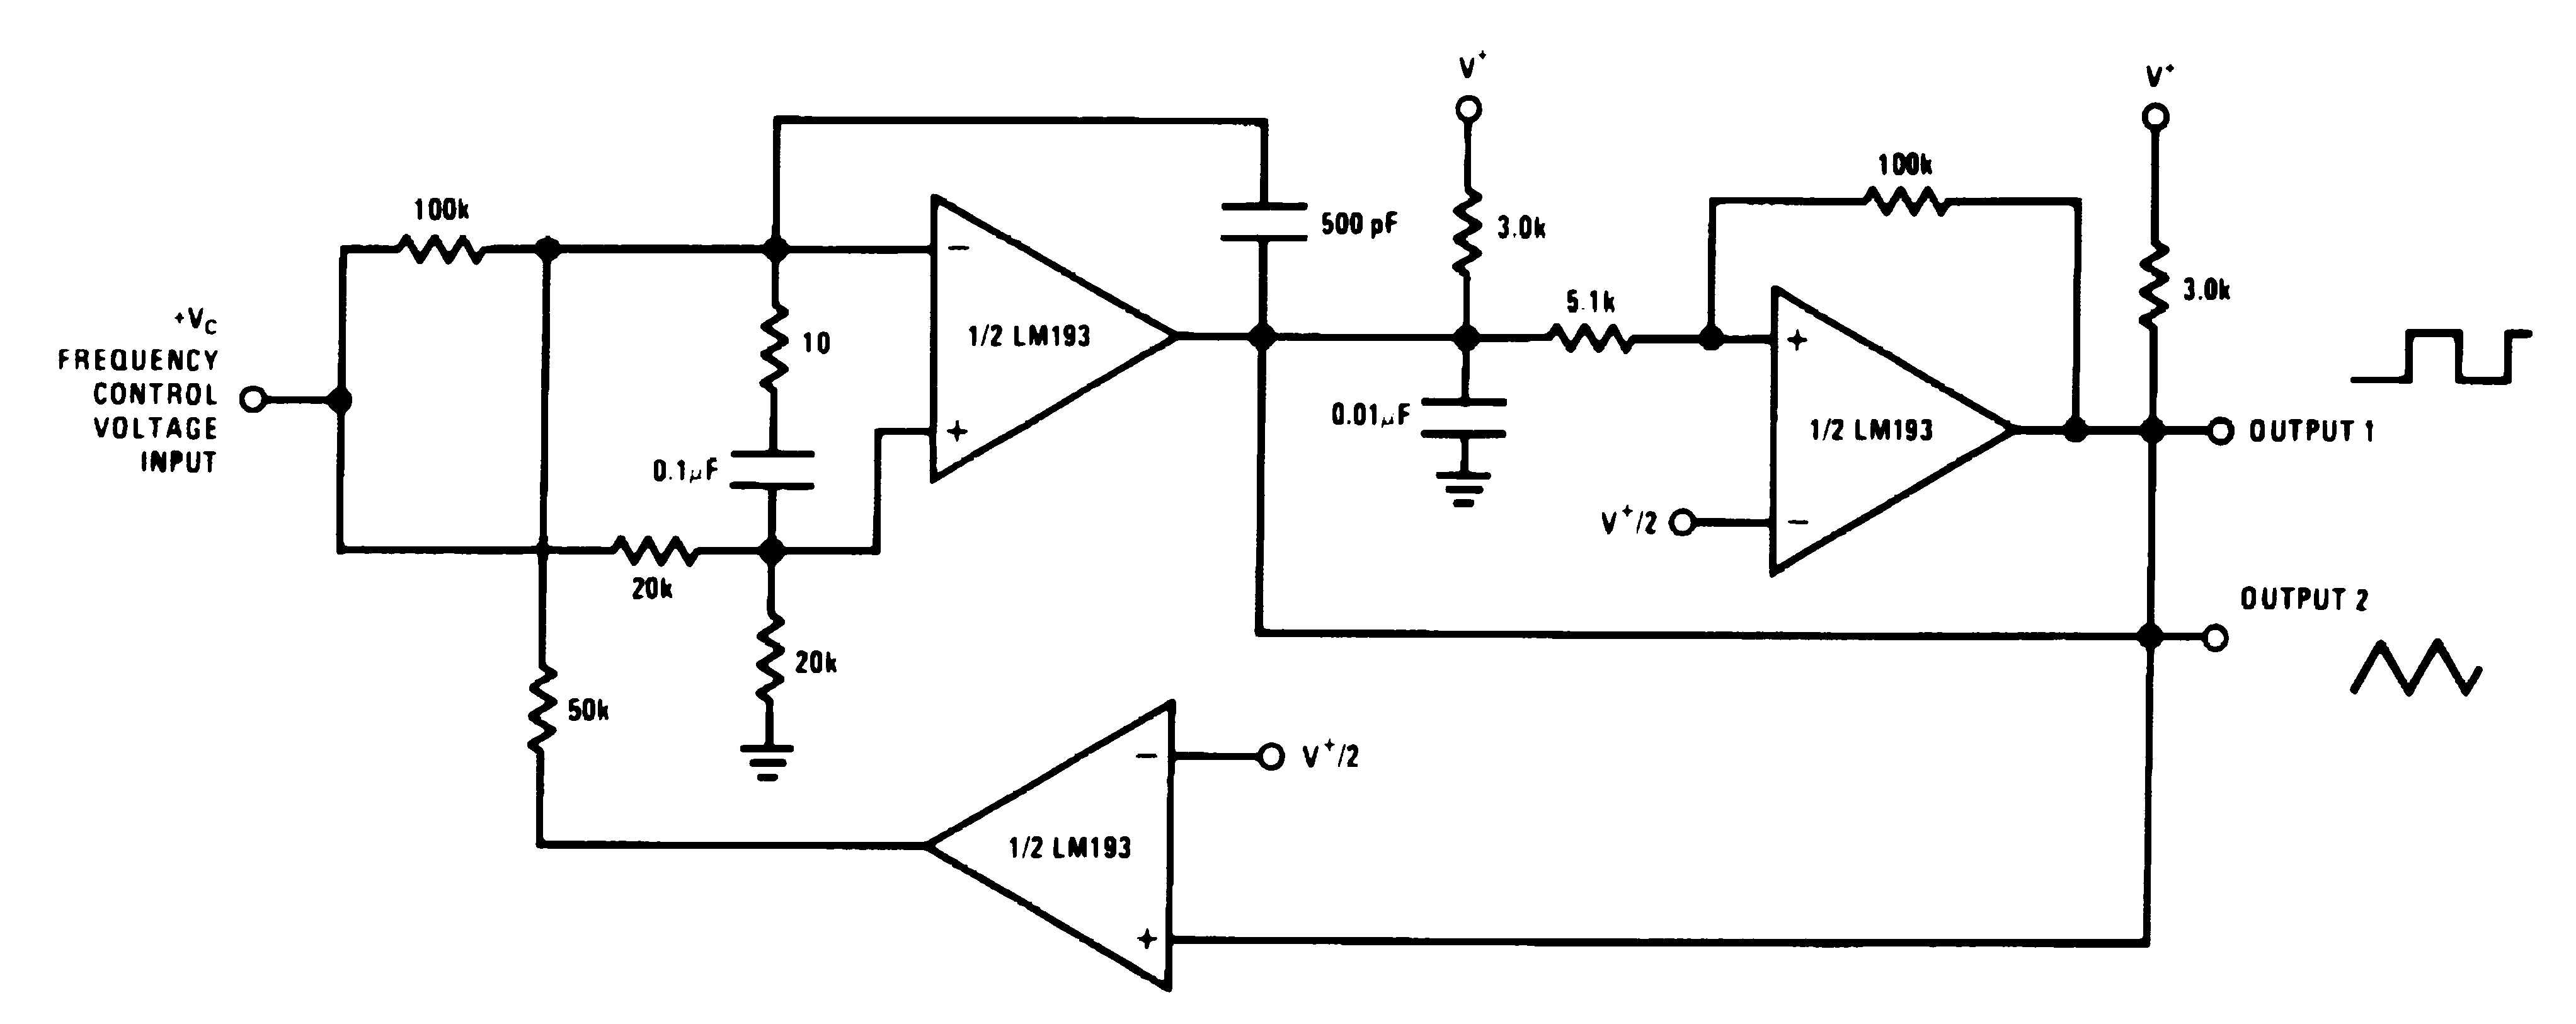 Lm193 N Comparator Oscillator Circuit By Lm311 Lm2903 Lm293 Lm393 00570941